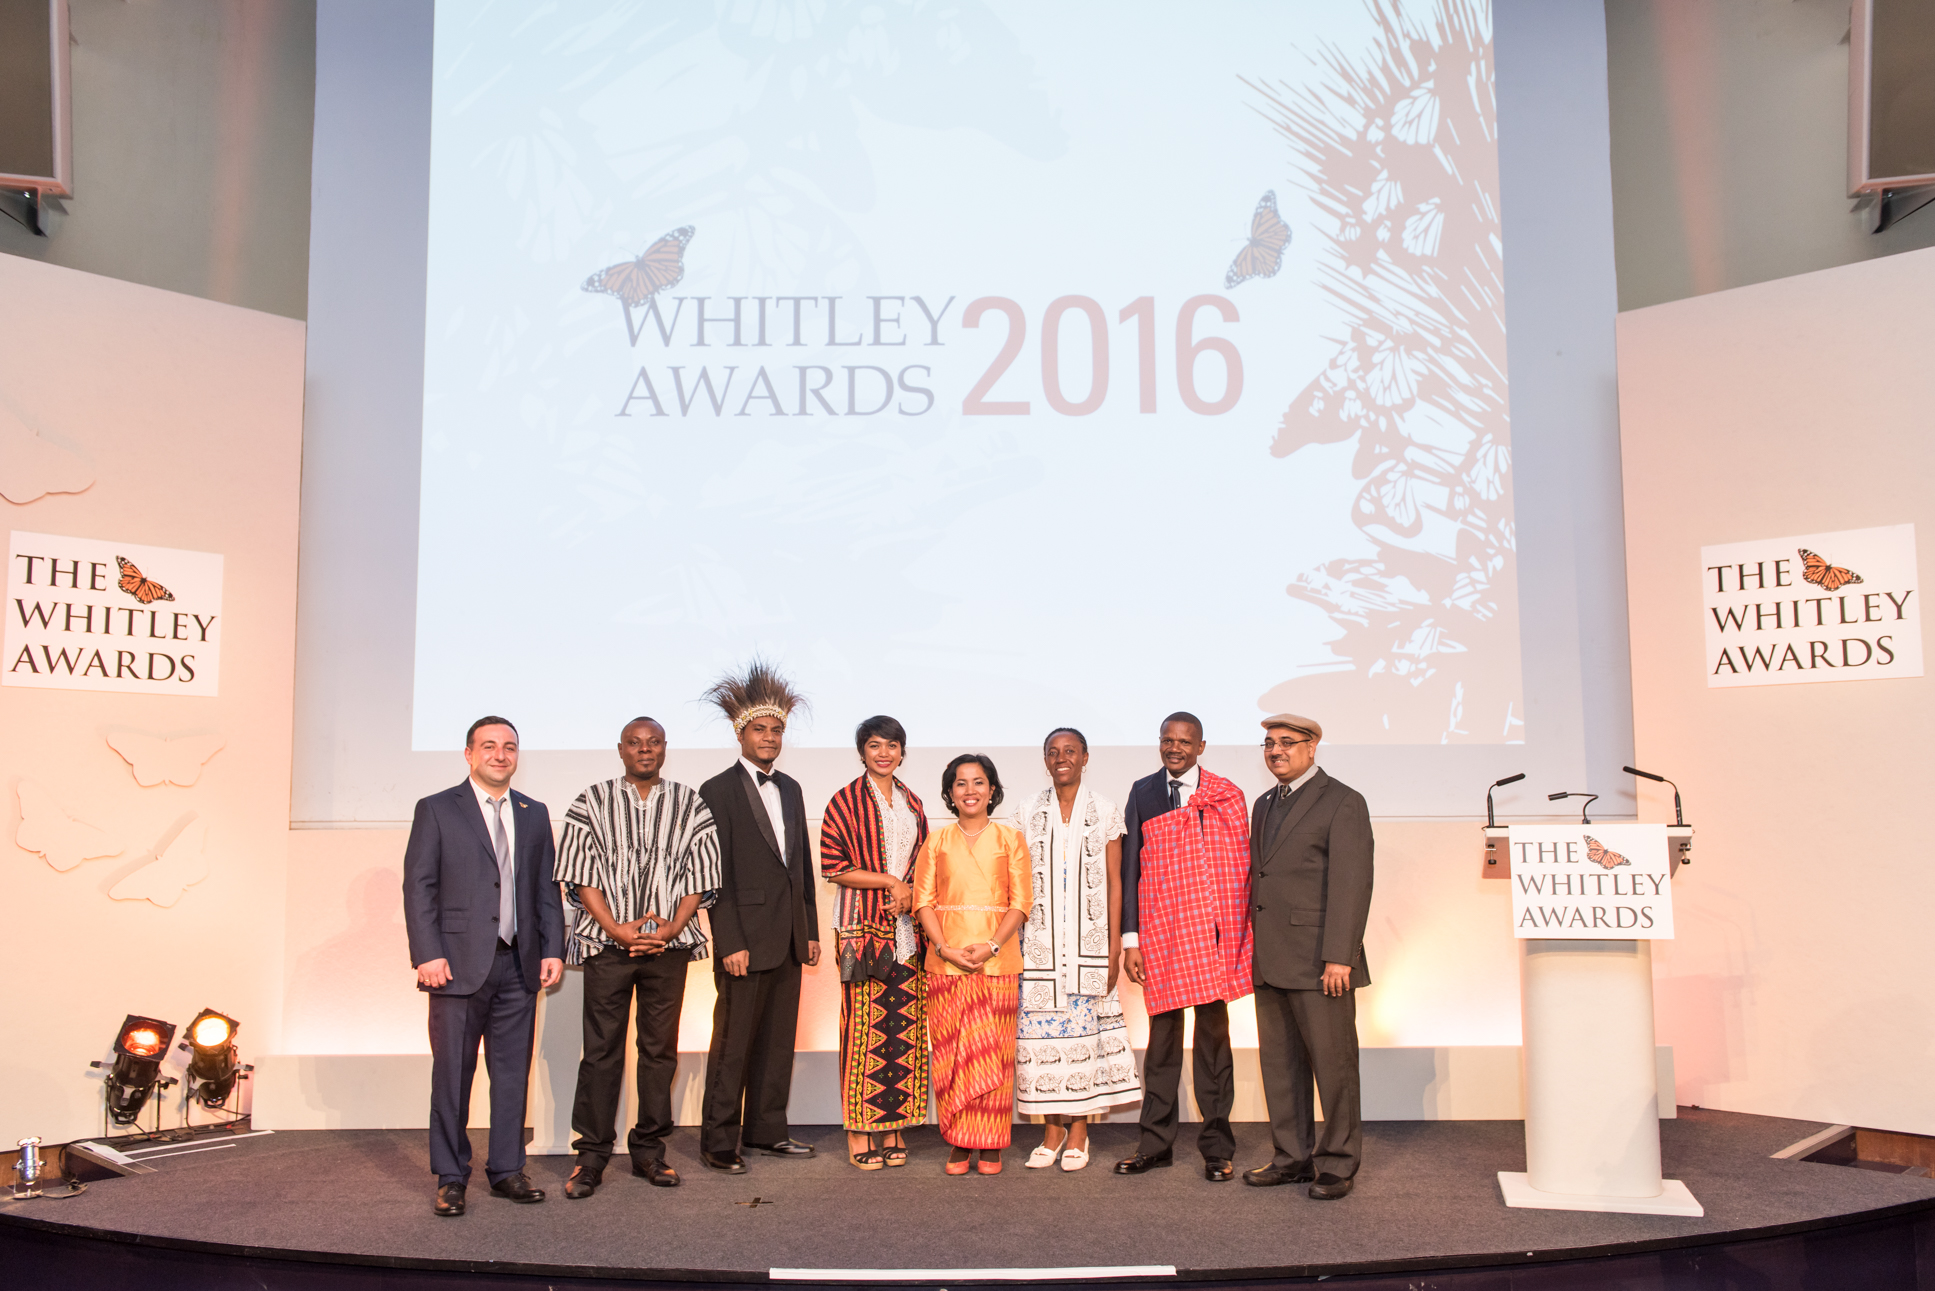 Image: Whitley Awards 2016